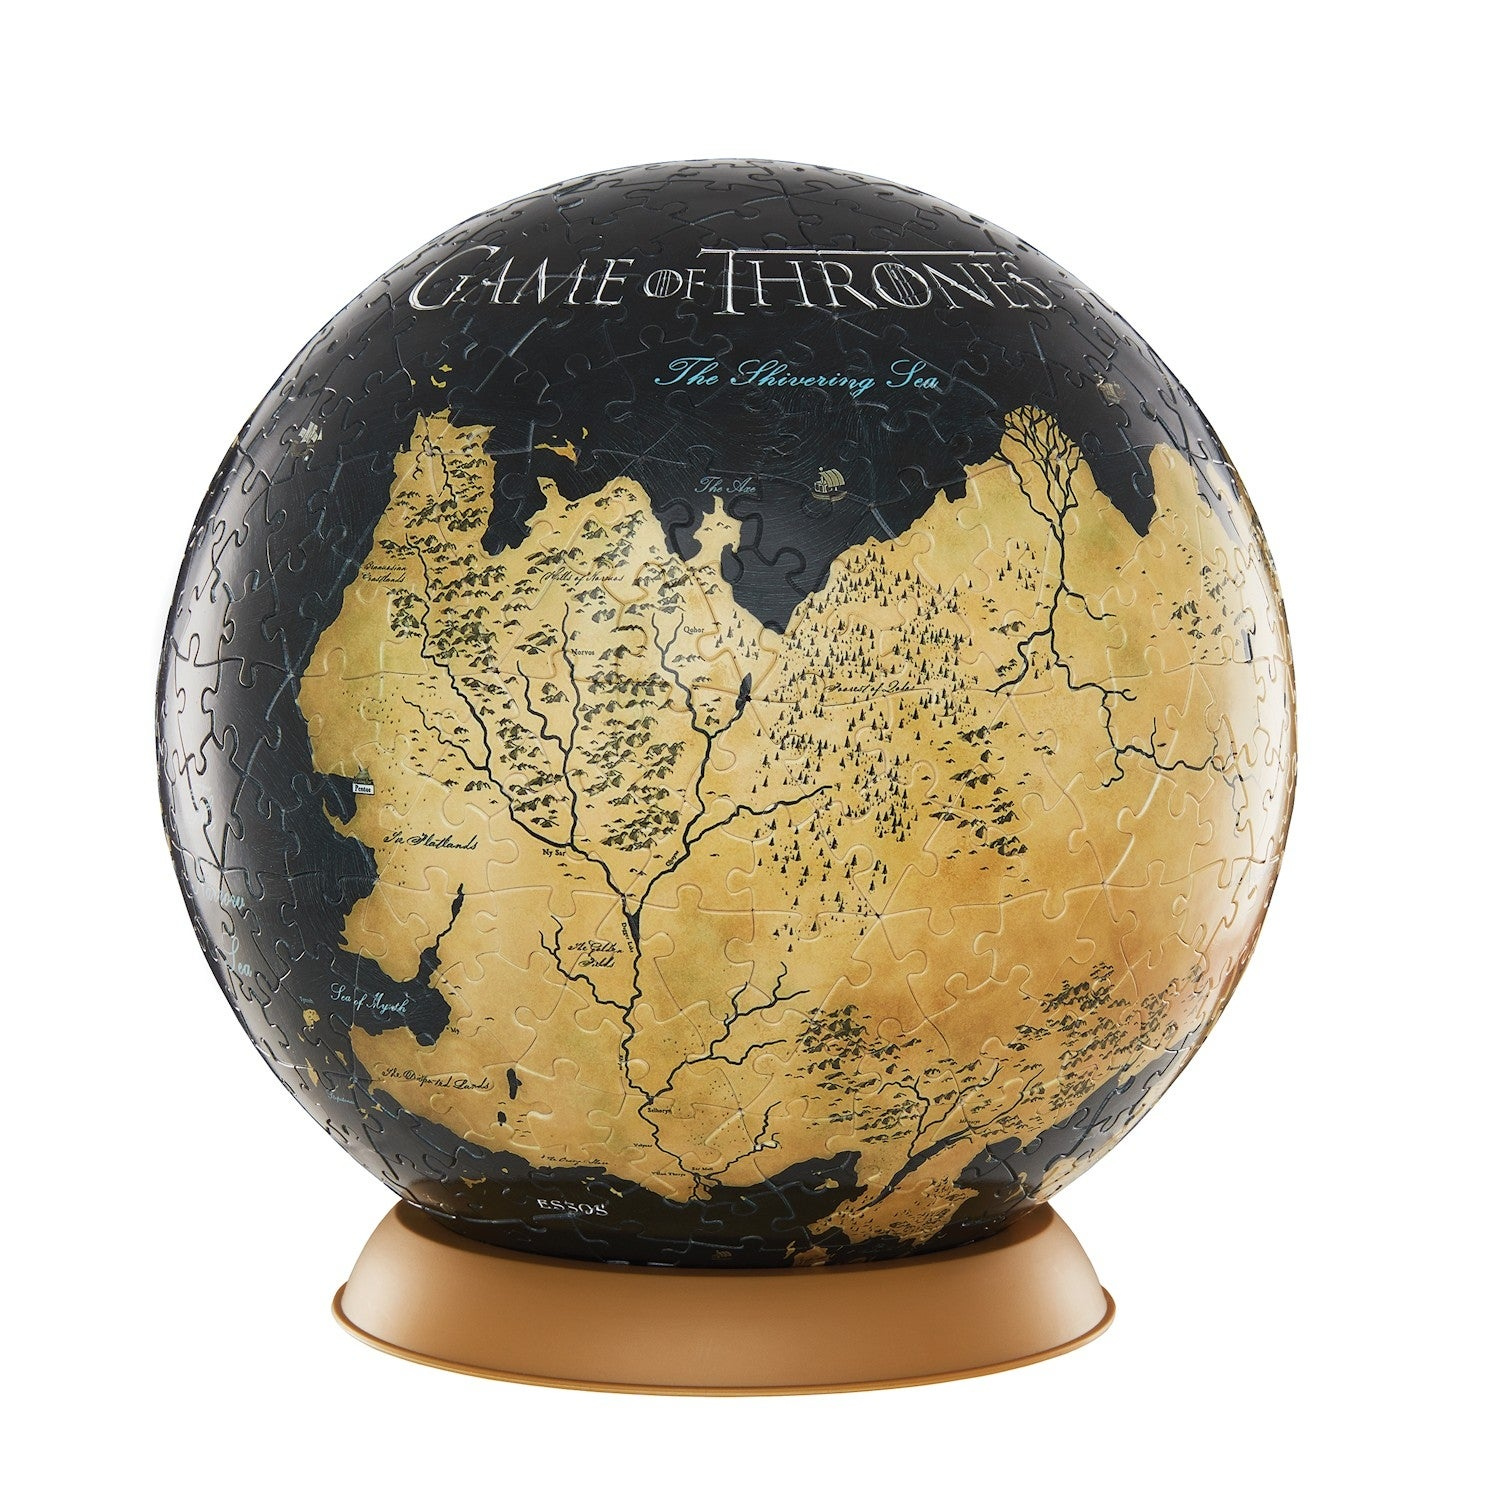 4D Cityscape Game Of Thrones Globe Puzzle - 540 Piece 3D Map of Westeros on game of thrones riverlands map, game of thrones castles, game of thrones bravo 's map, game of thrones westeros map, game of thrones winterfell, game of thrones google map, from game of thrones map, game of thrones wolf, game of thrones cities, game of thrones geography, game of thrones books, game of thrones comic tower of joy, game of thrones full world map, game of thrones web map, best game of thrones map, game of thrones puzzle, game of thrones map the south, game of thrones maps pdf, game of thrones map poster,